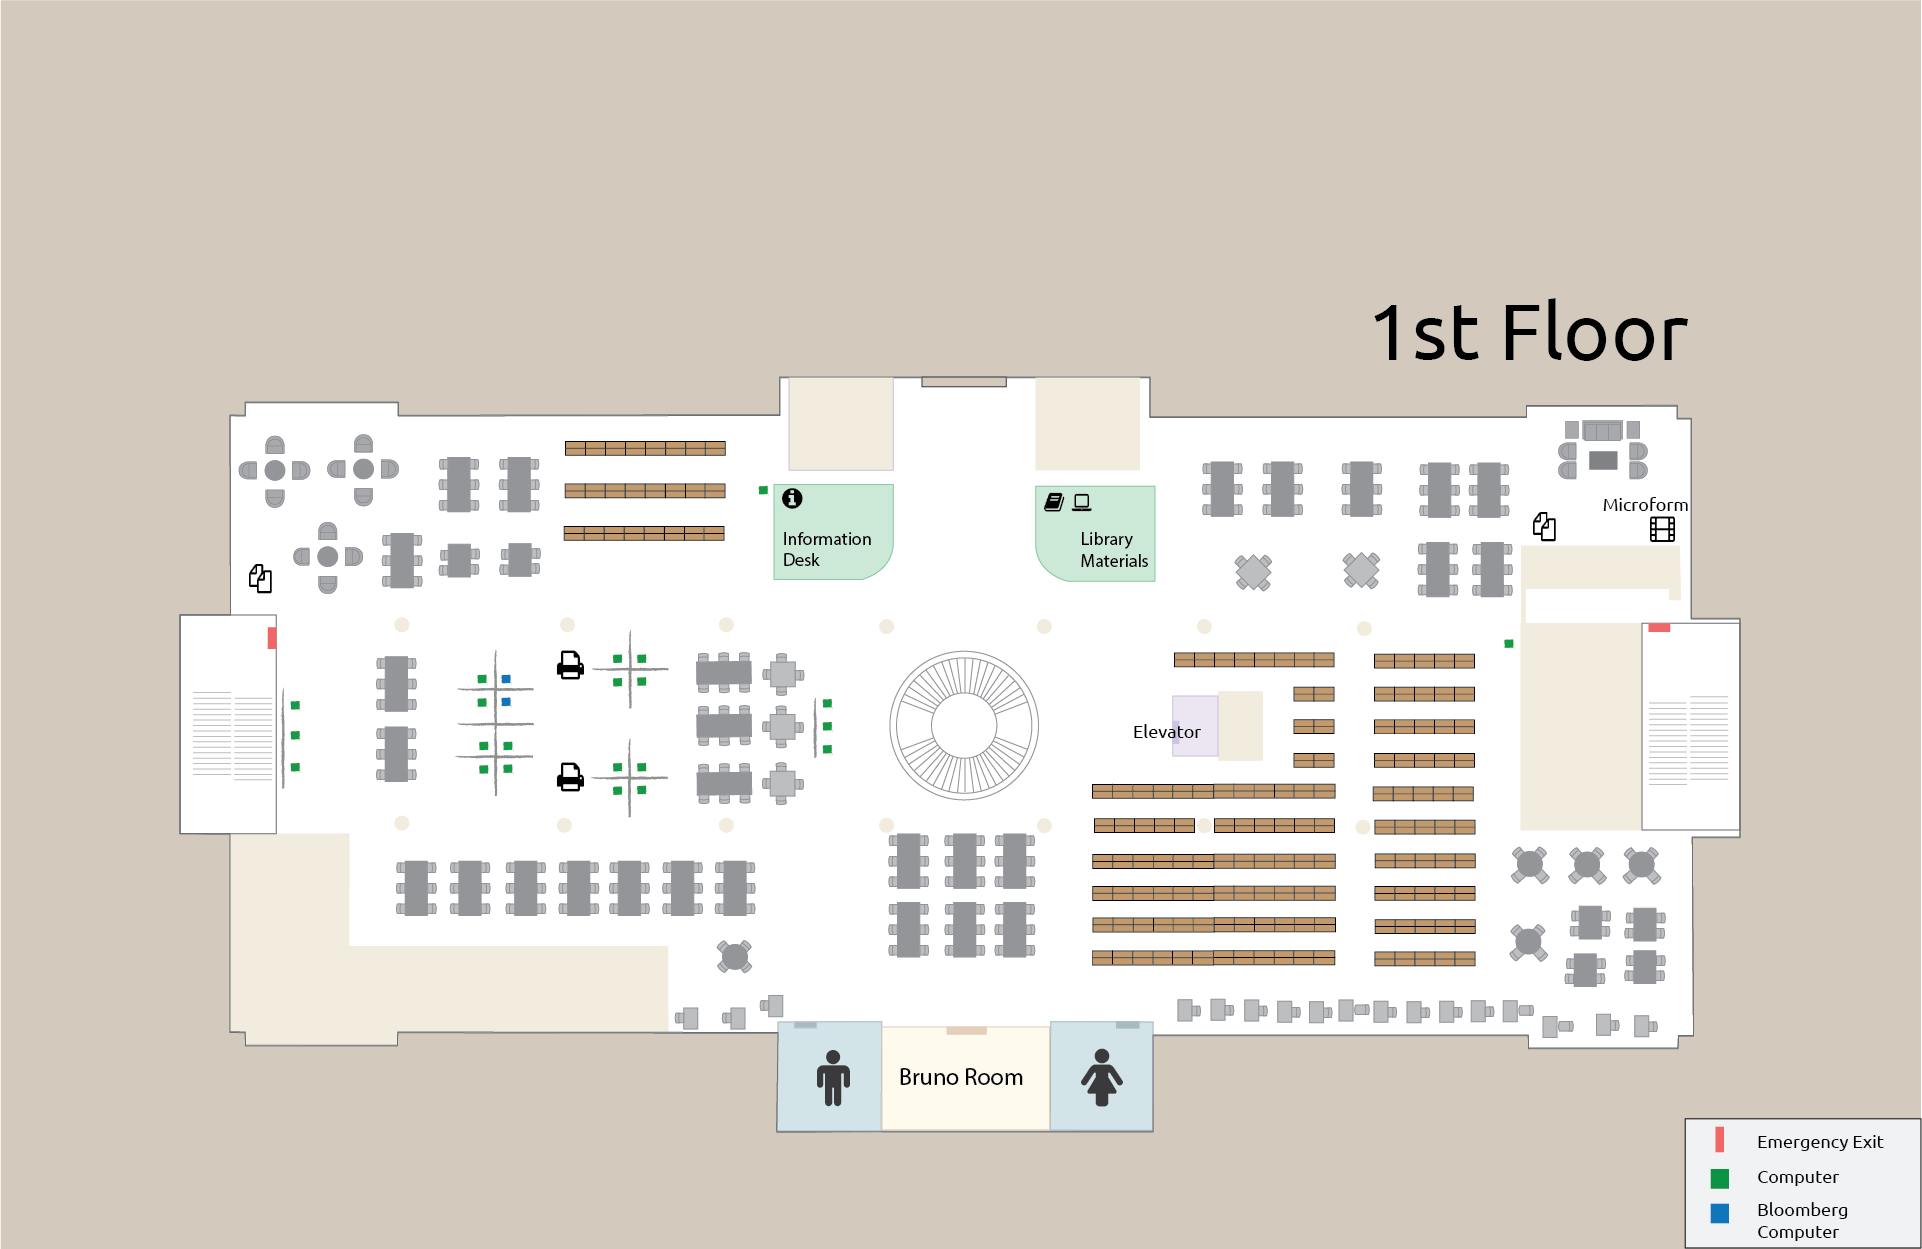 bruno floor plans u2013 the university of alabama libraries